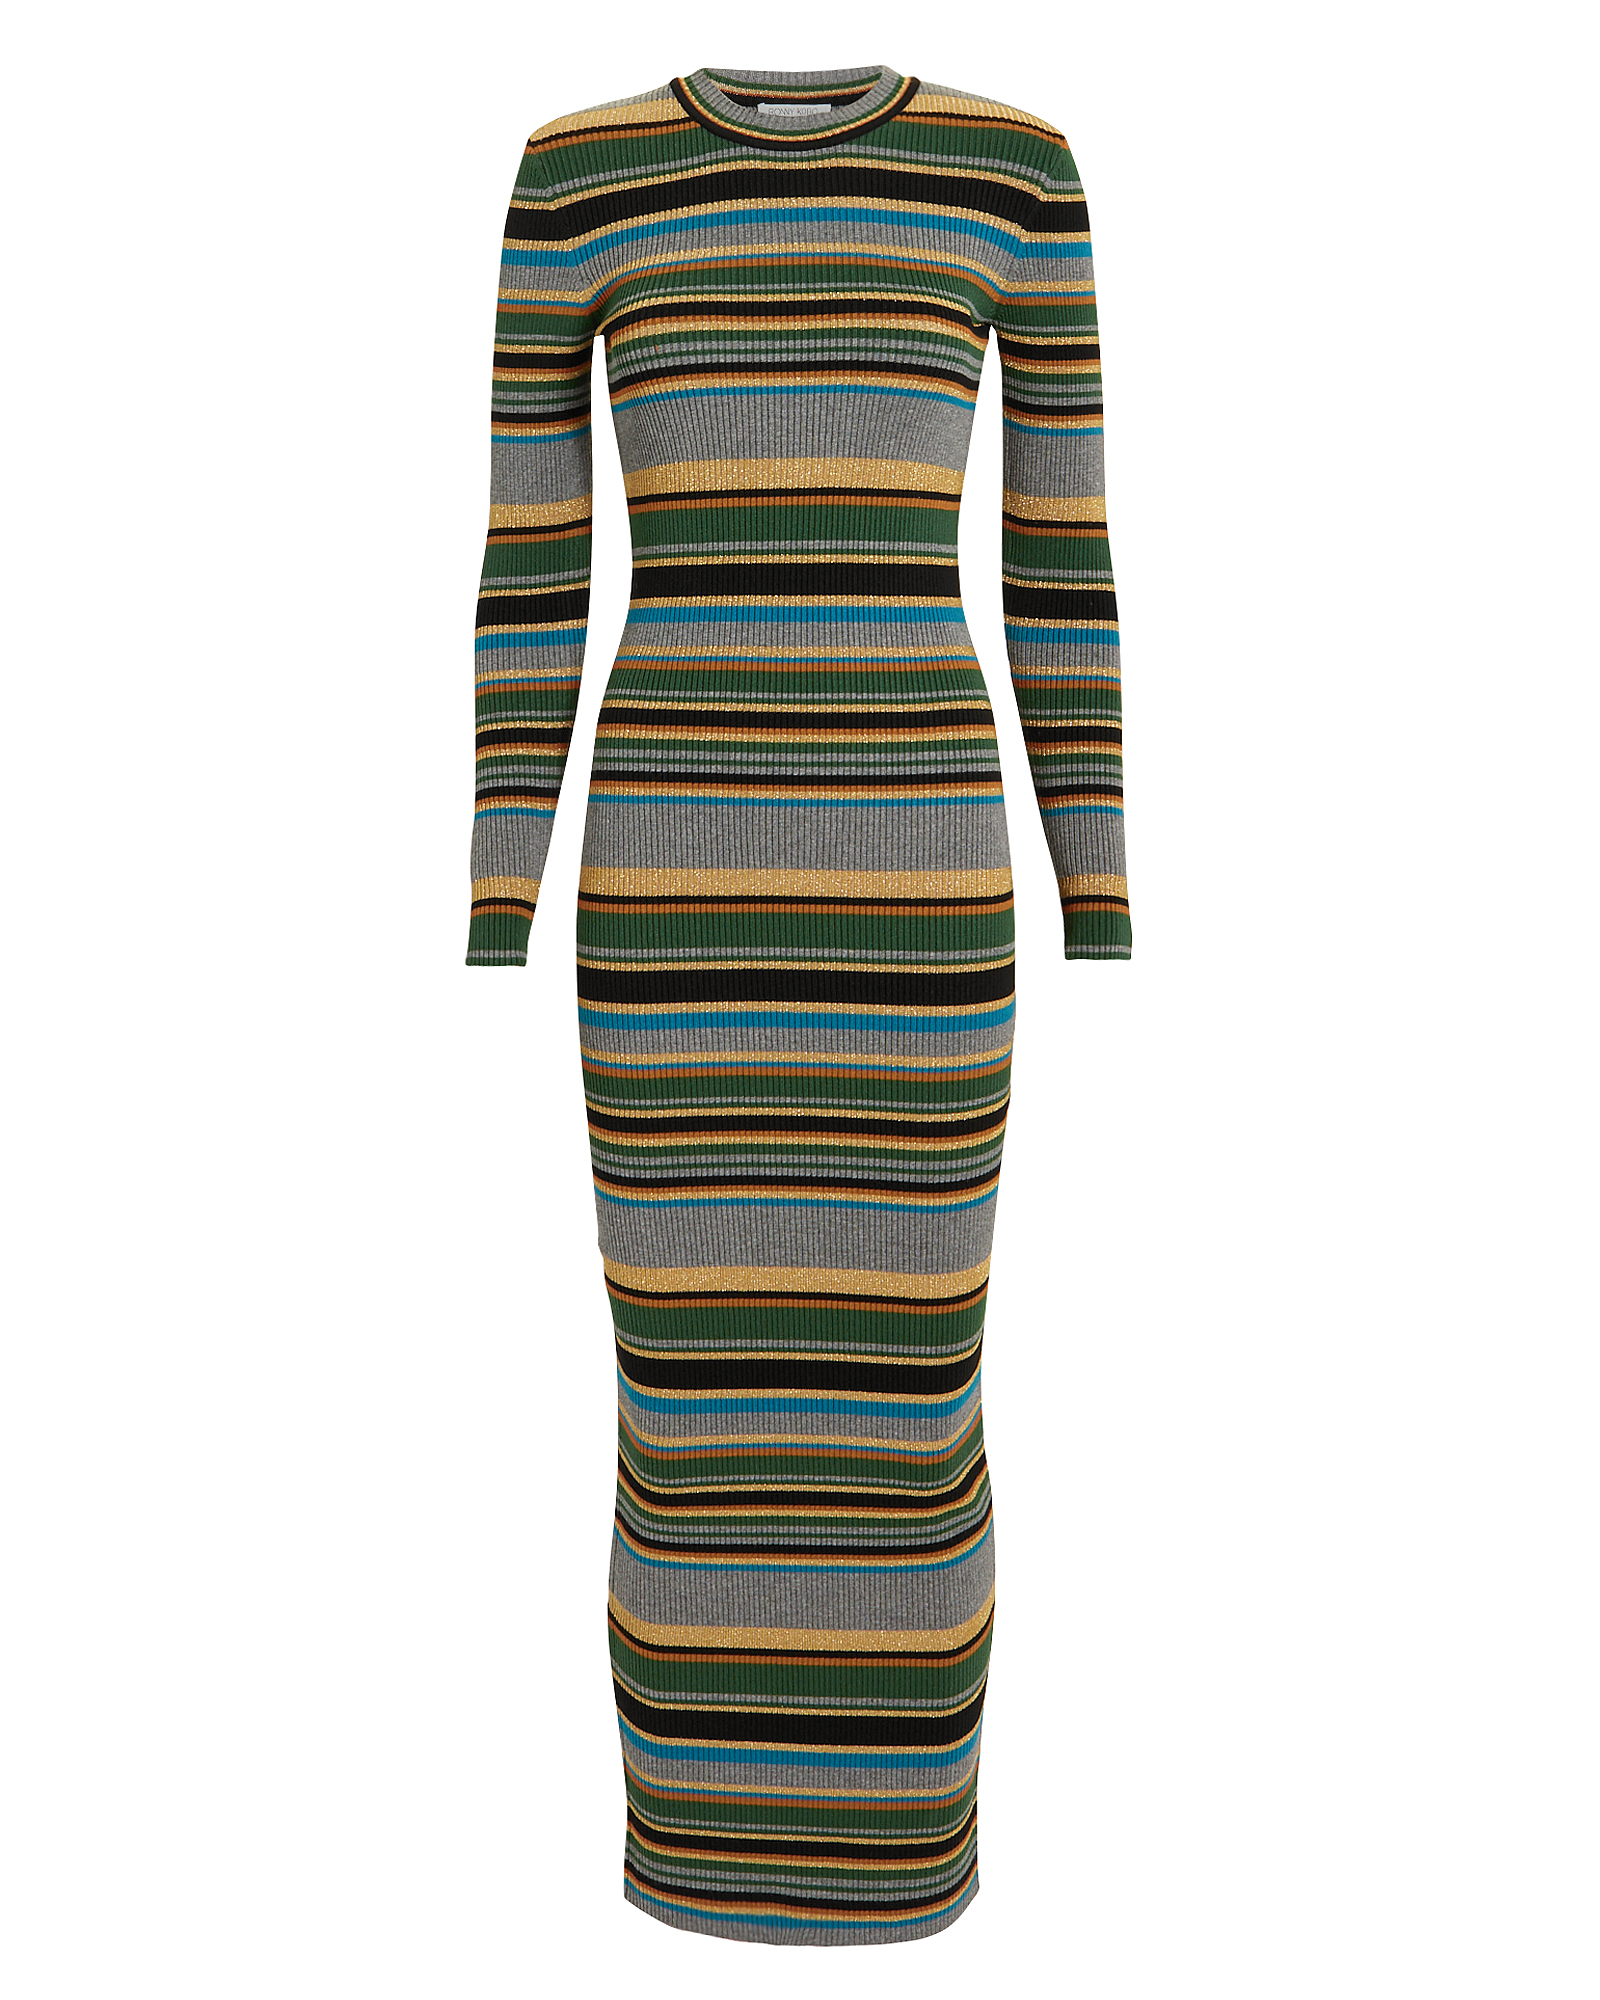 Torn RONNY KOBO TILDA STRIPED DRESS  MULTI P